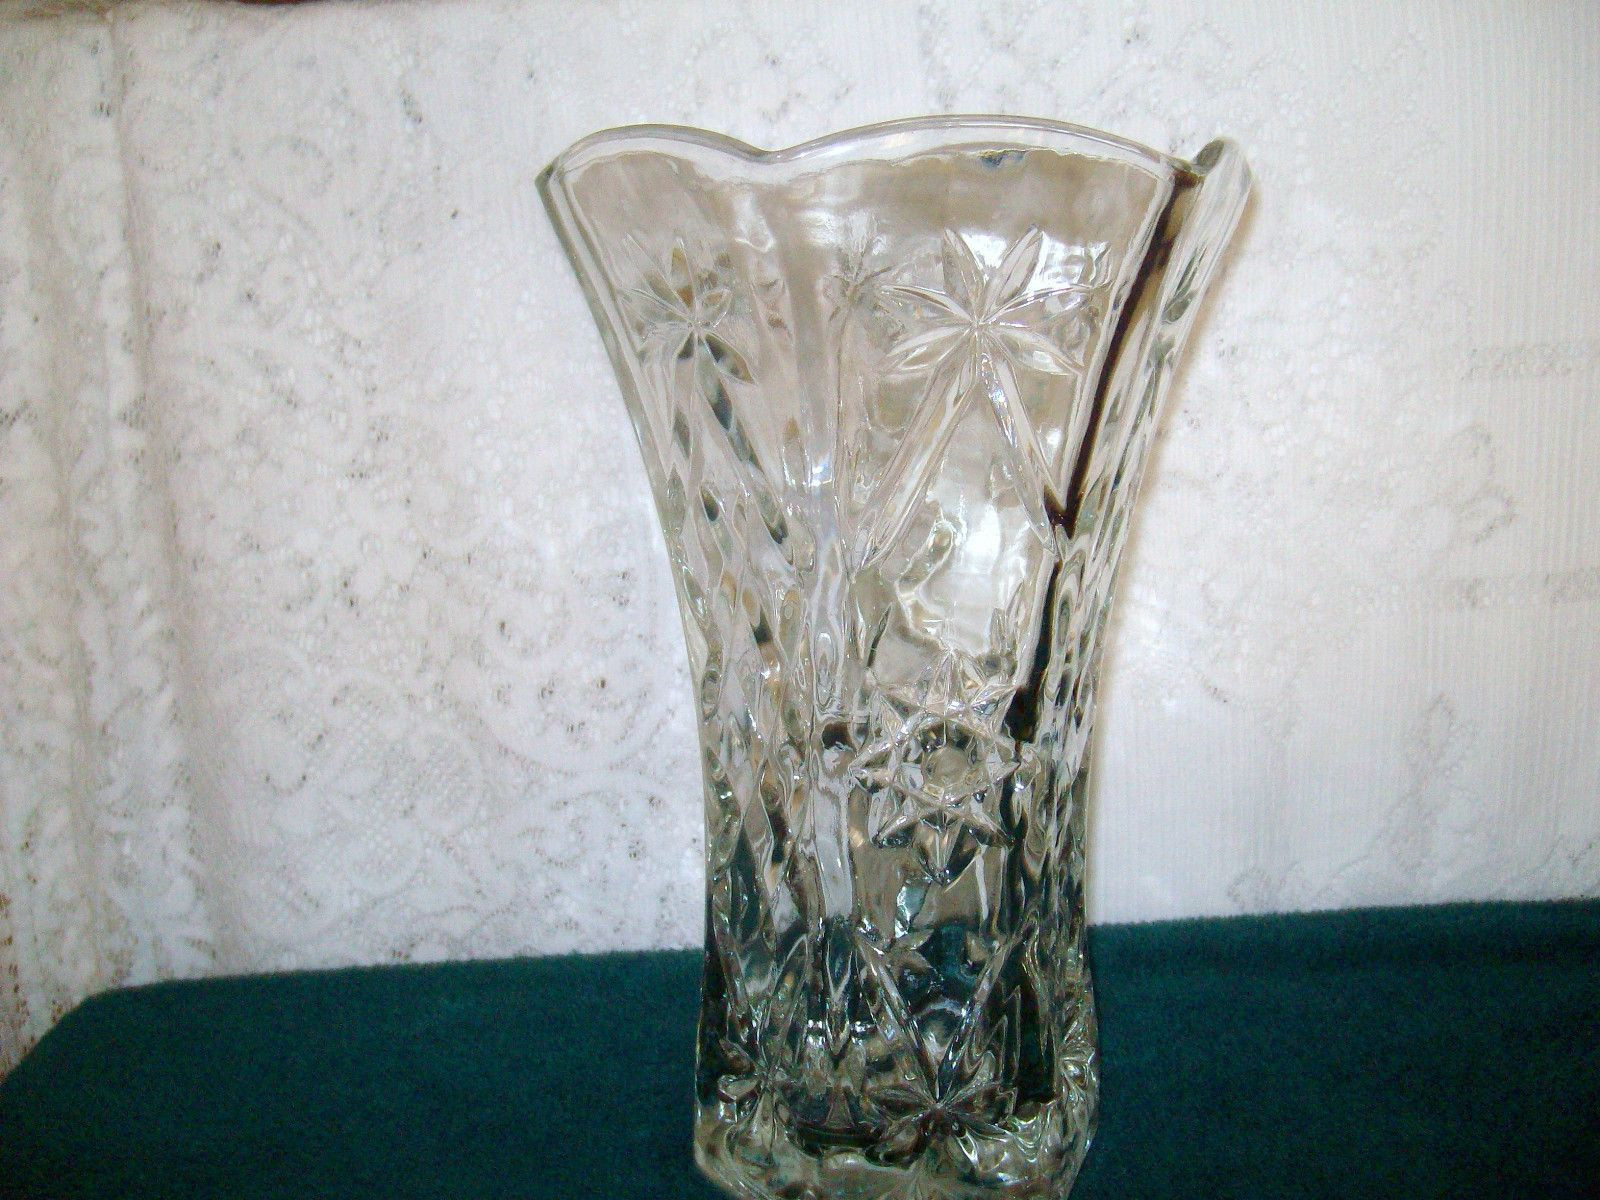 vintage tall glass vases of vintage heavy depression cut glass vase 10 1 2 tall ruffled edges with vintage heavy depression cut glass vase 10 1 2 tall ruffled edges